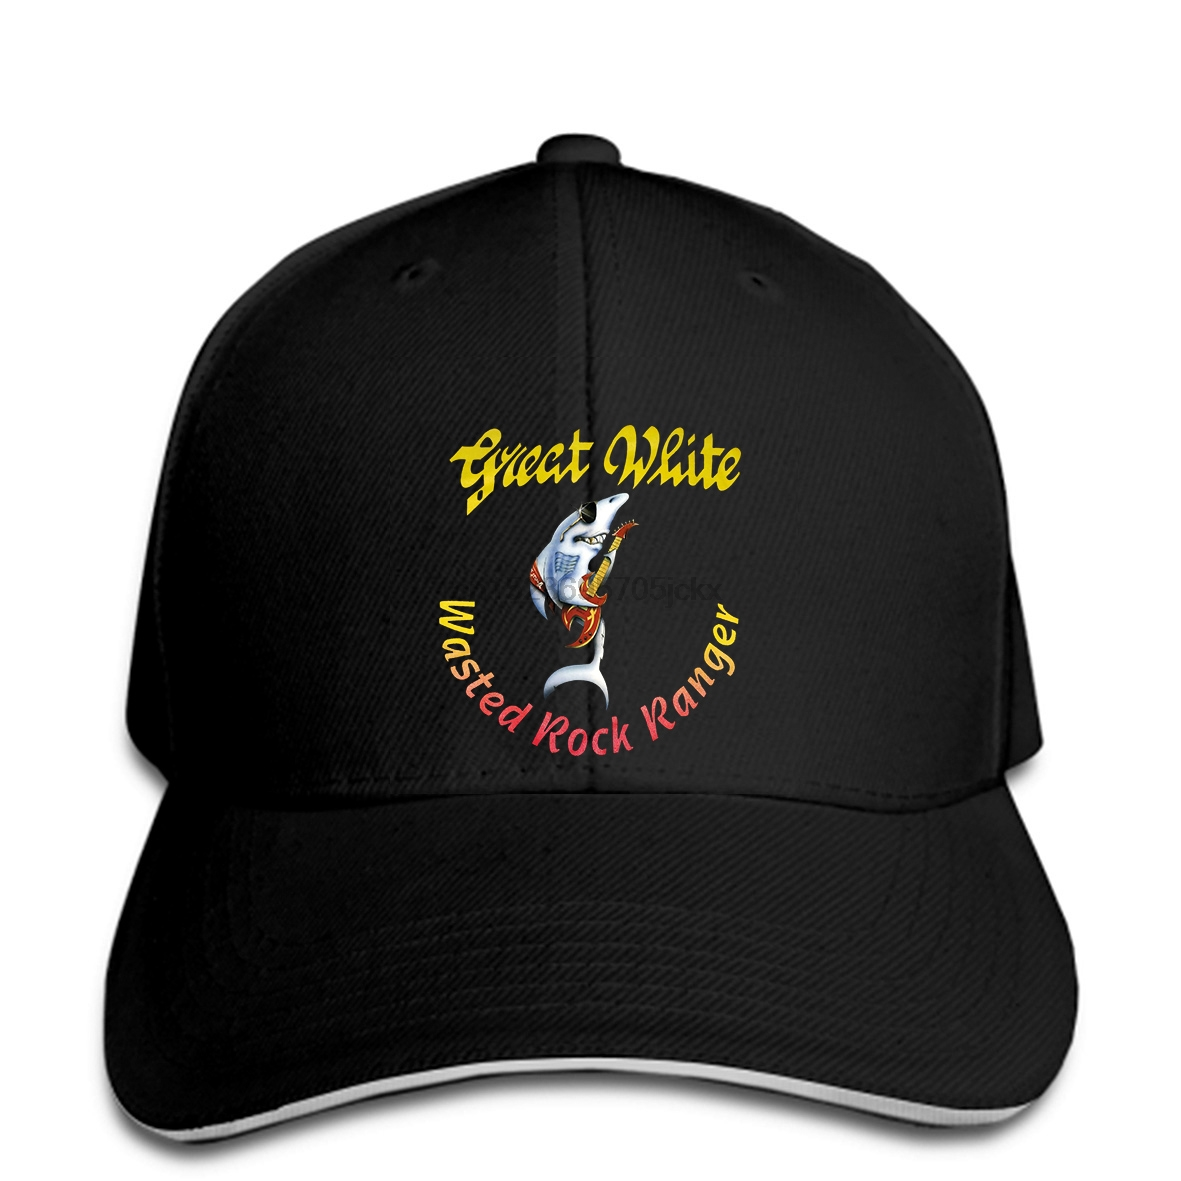 Vintage 1997 Great White Baseball cap REPRINT Hard Rock Band Tour 90s snapback hat Peaked image